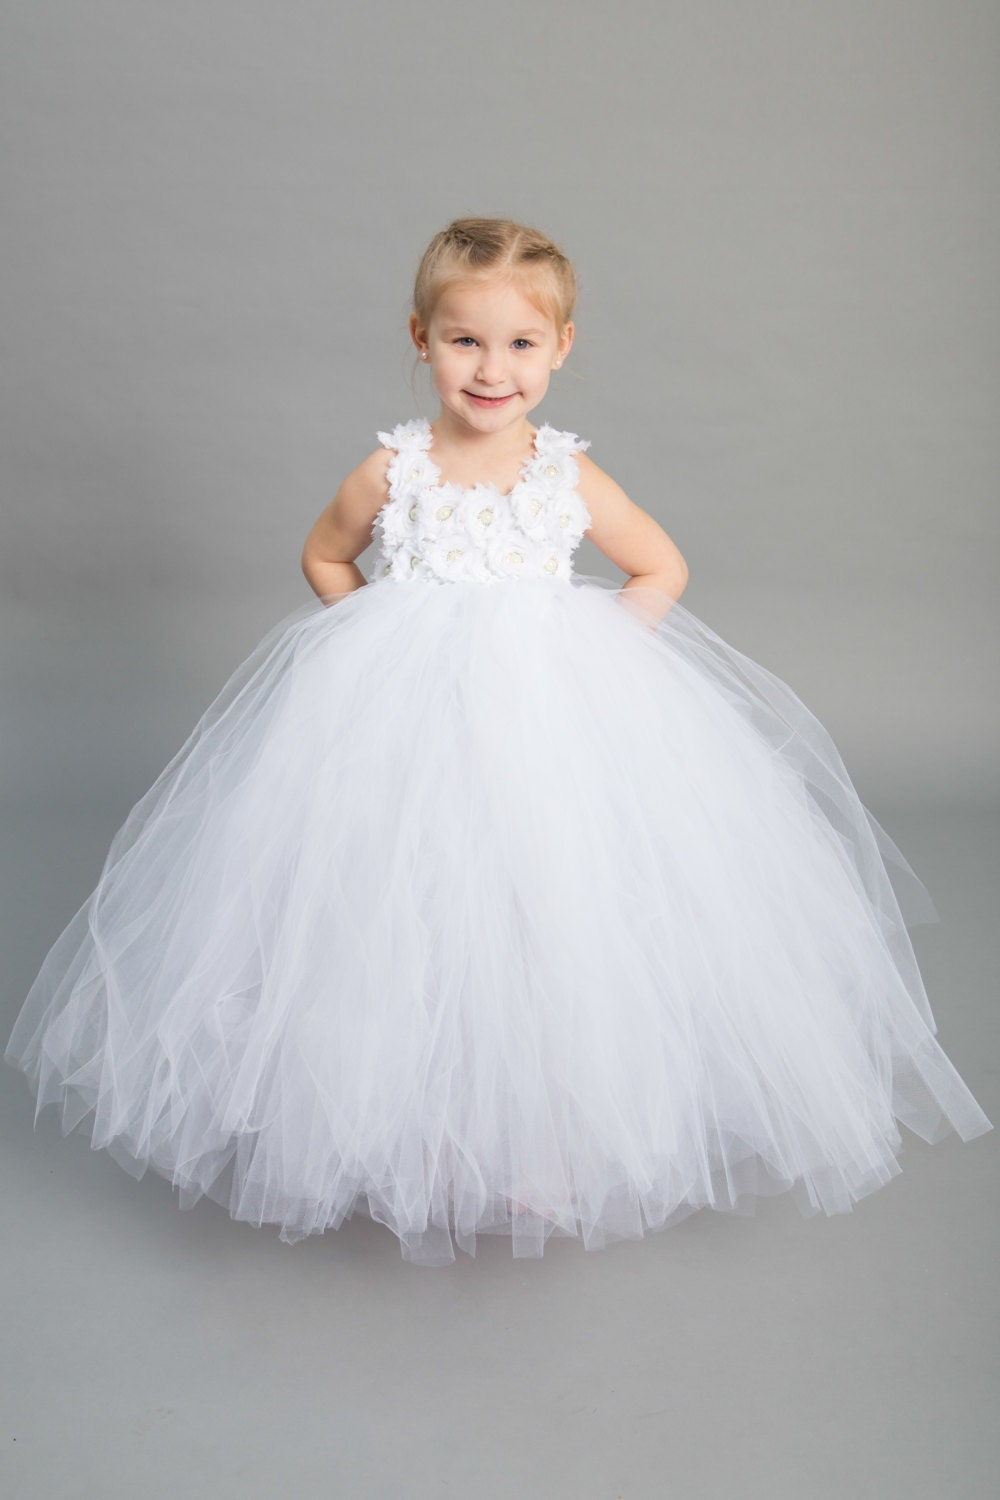 Flower girl dress Tulle flower girl dress White Dress